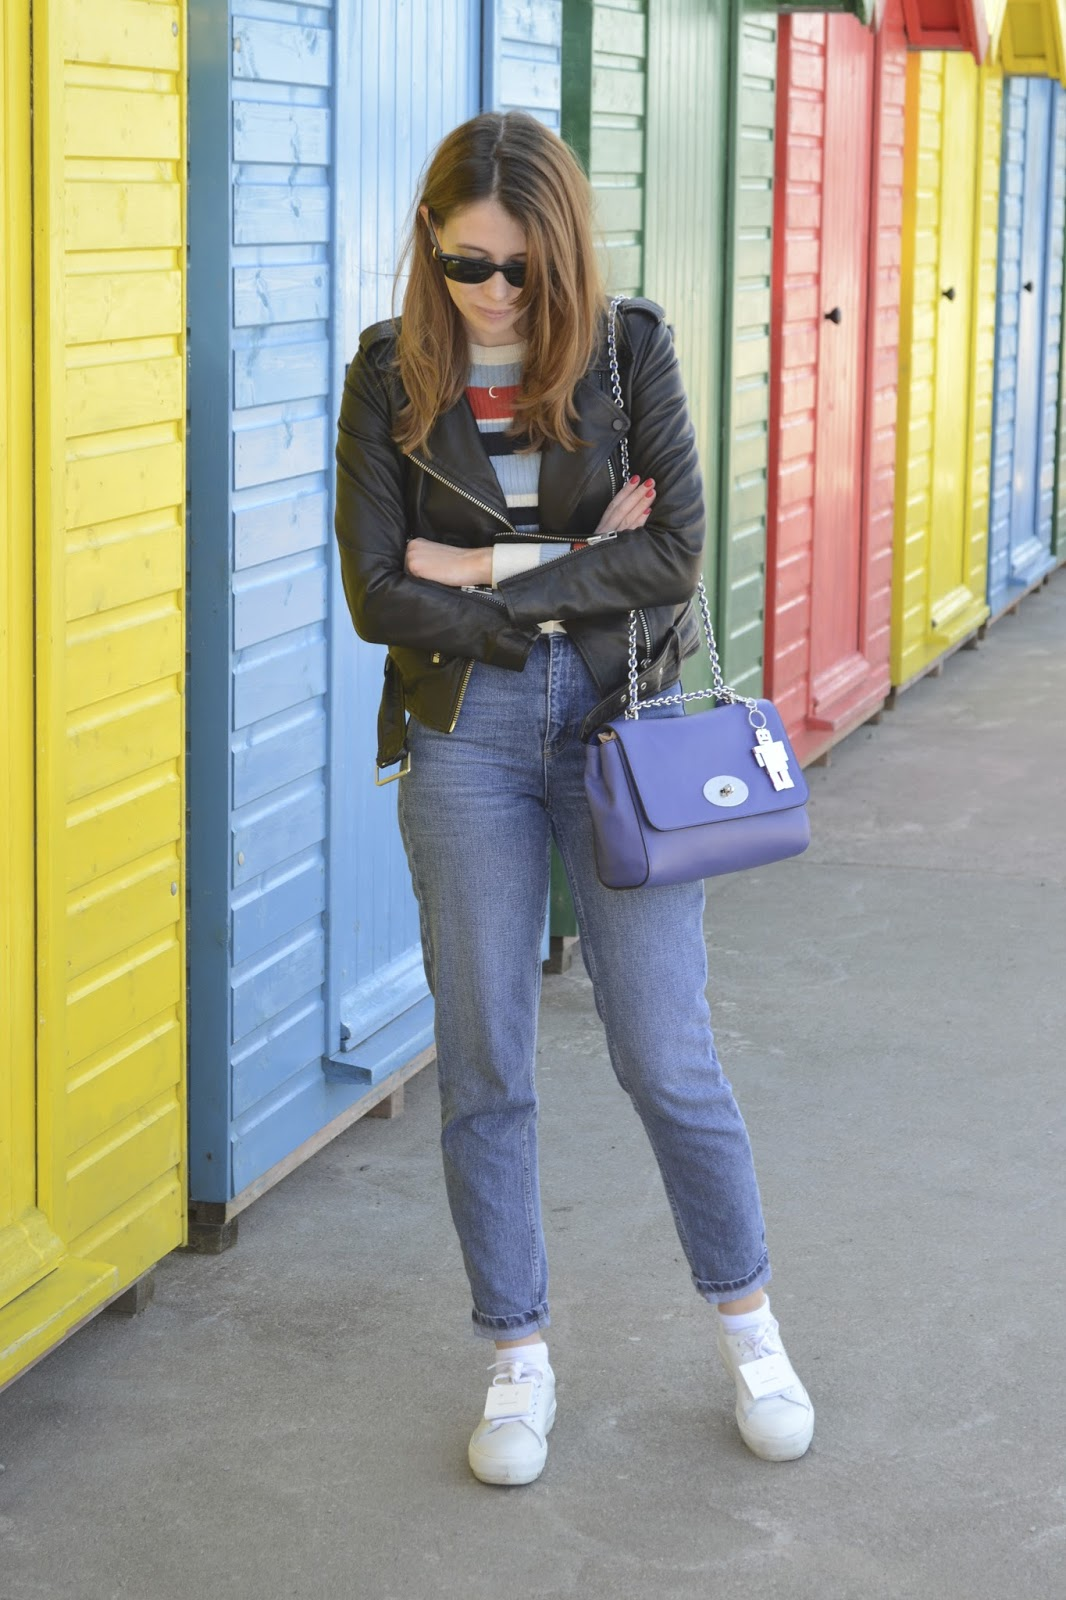 Affordable women's fashion blog ft Black leather jacket from Allsaints, Denim Mom style jeans from Topshop, Striped jumper from Urban outfitters, Blue Mulberry lily bag, Acne trainers.